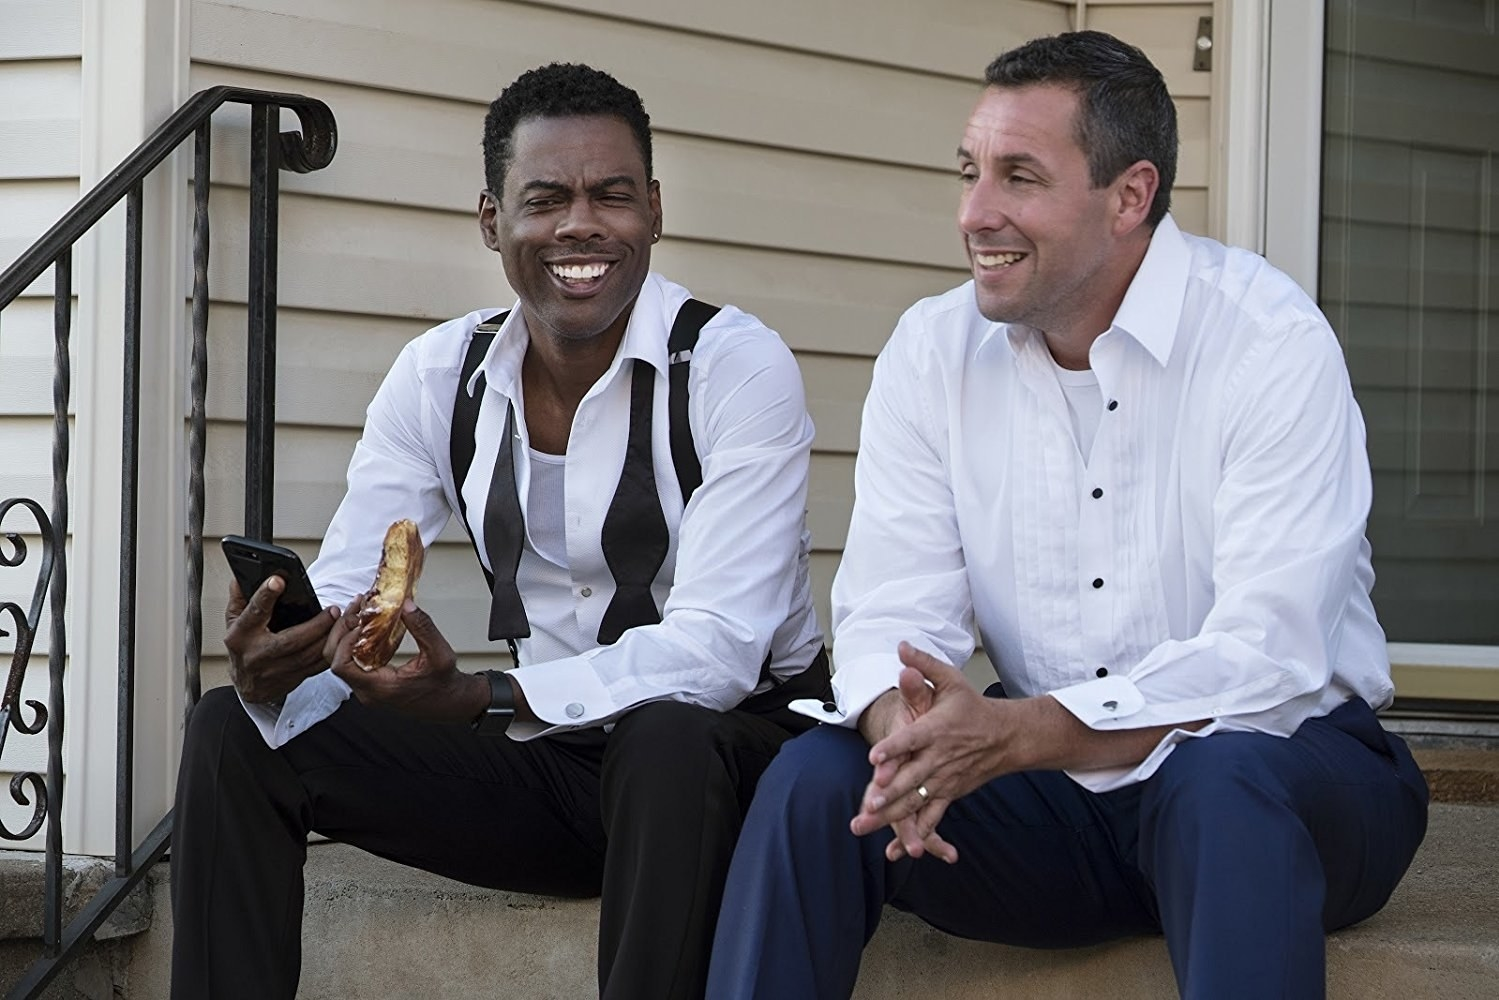 The Week Of  -  A wedding movie with both Chris Rock and Adam Sandler shouldn't need any more reasons to tune in, but we've got you. The premise:  Both actors play the opposing fathers of the couple who's getting married in the movie, and of course, they hilariously do NOT get along.